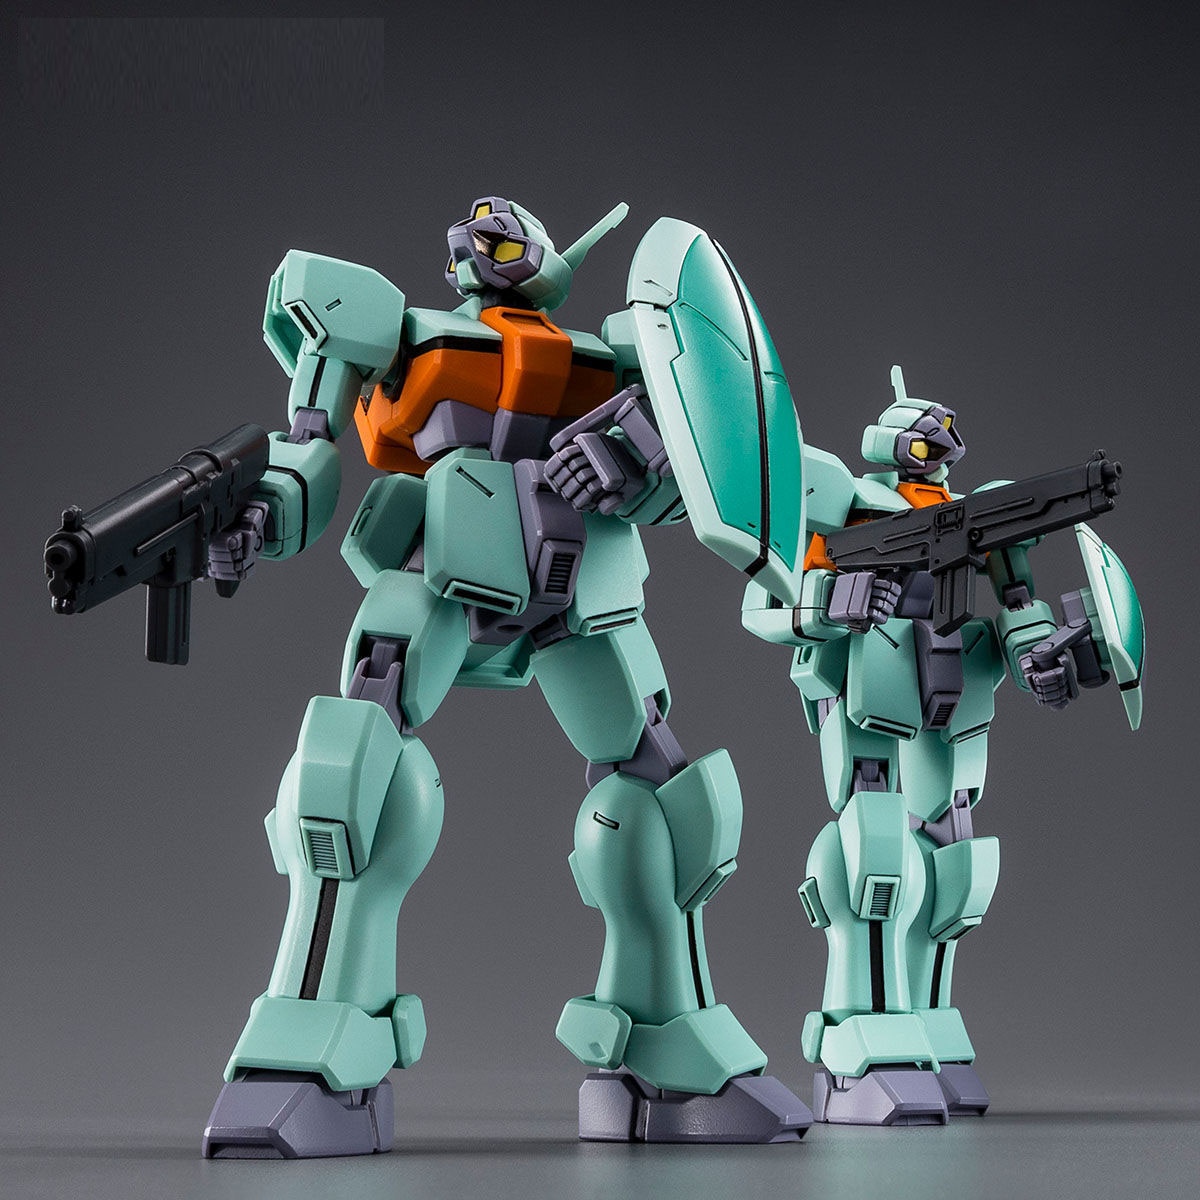 HG 1/144 DAUGHTRESS[Dec 2020 Delivery]